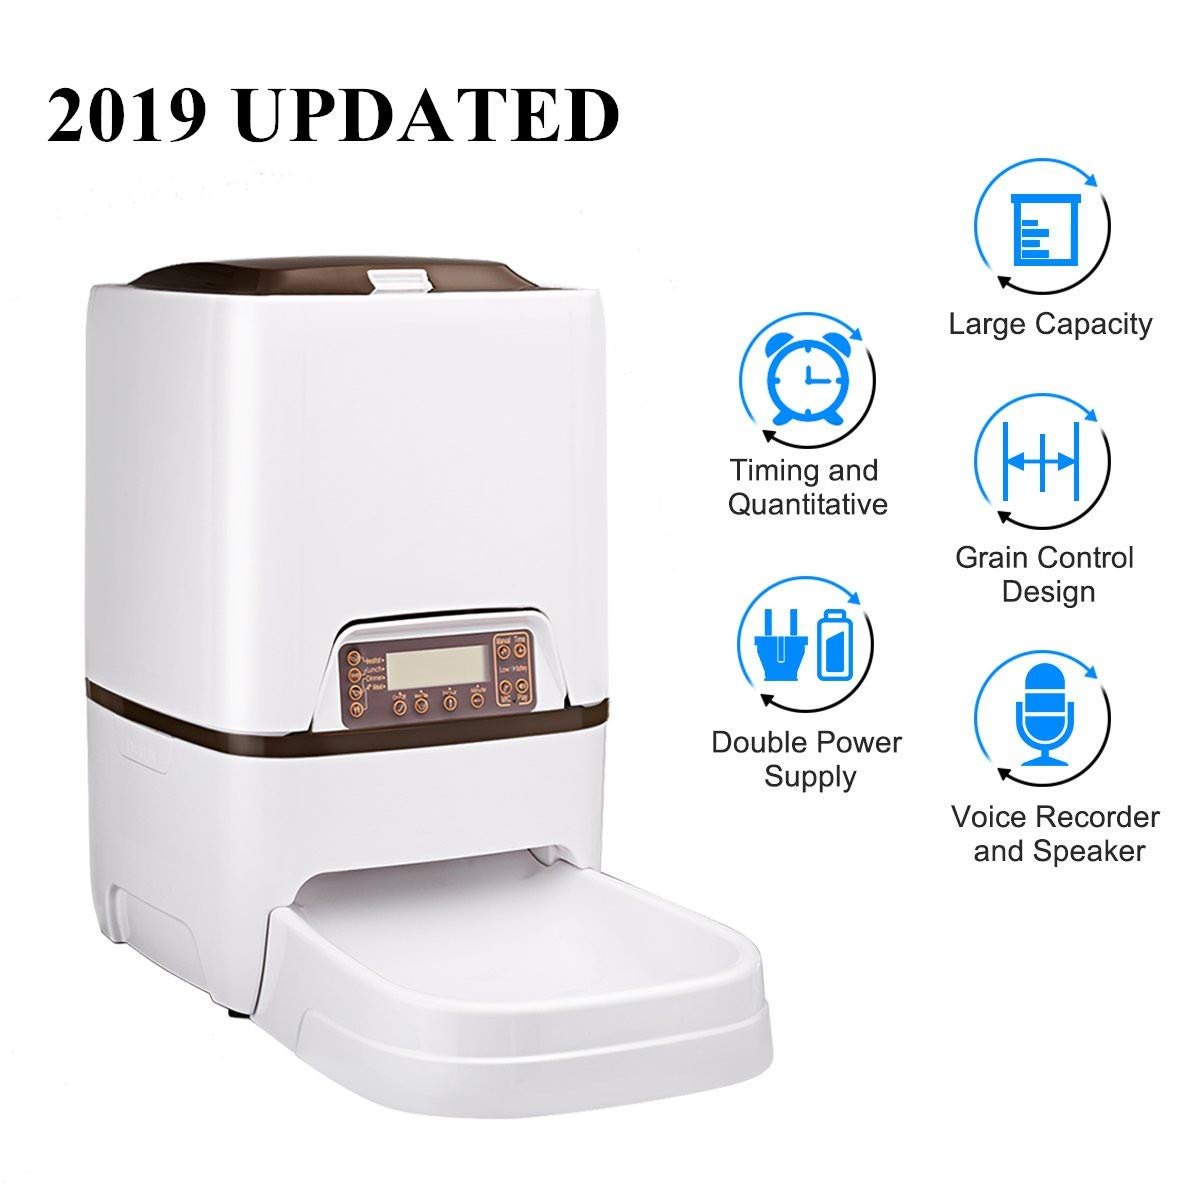 Docamor 6L Automatic Pet Feeder Dogs Cats Food Dispenser with Voice Recorder and Speaker,Timer Programmable,Infrared Sensor Detecting,LCD Display,Portion Control,Distribution Alarm Up to 4 Meals a Day by Docamor